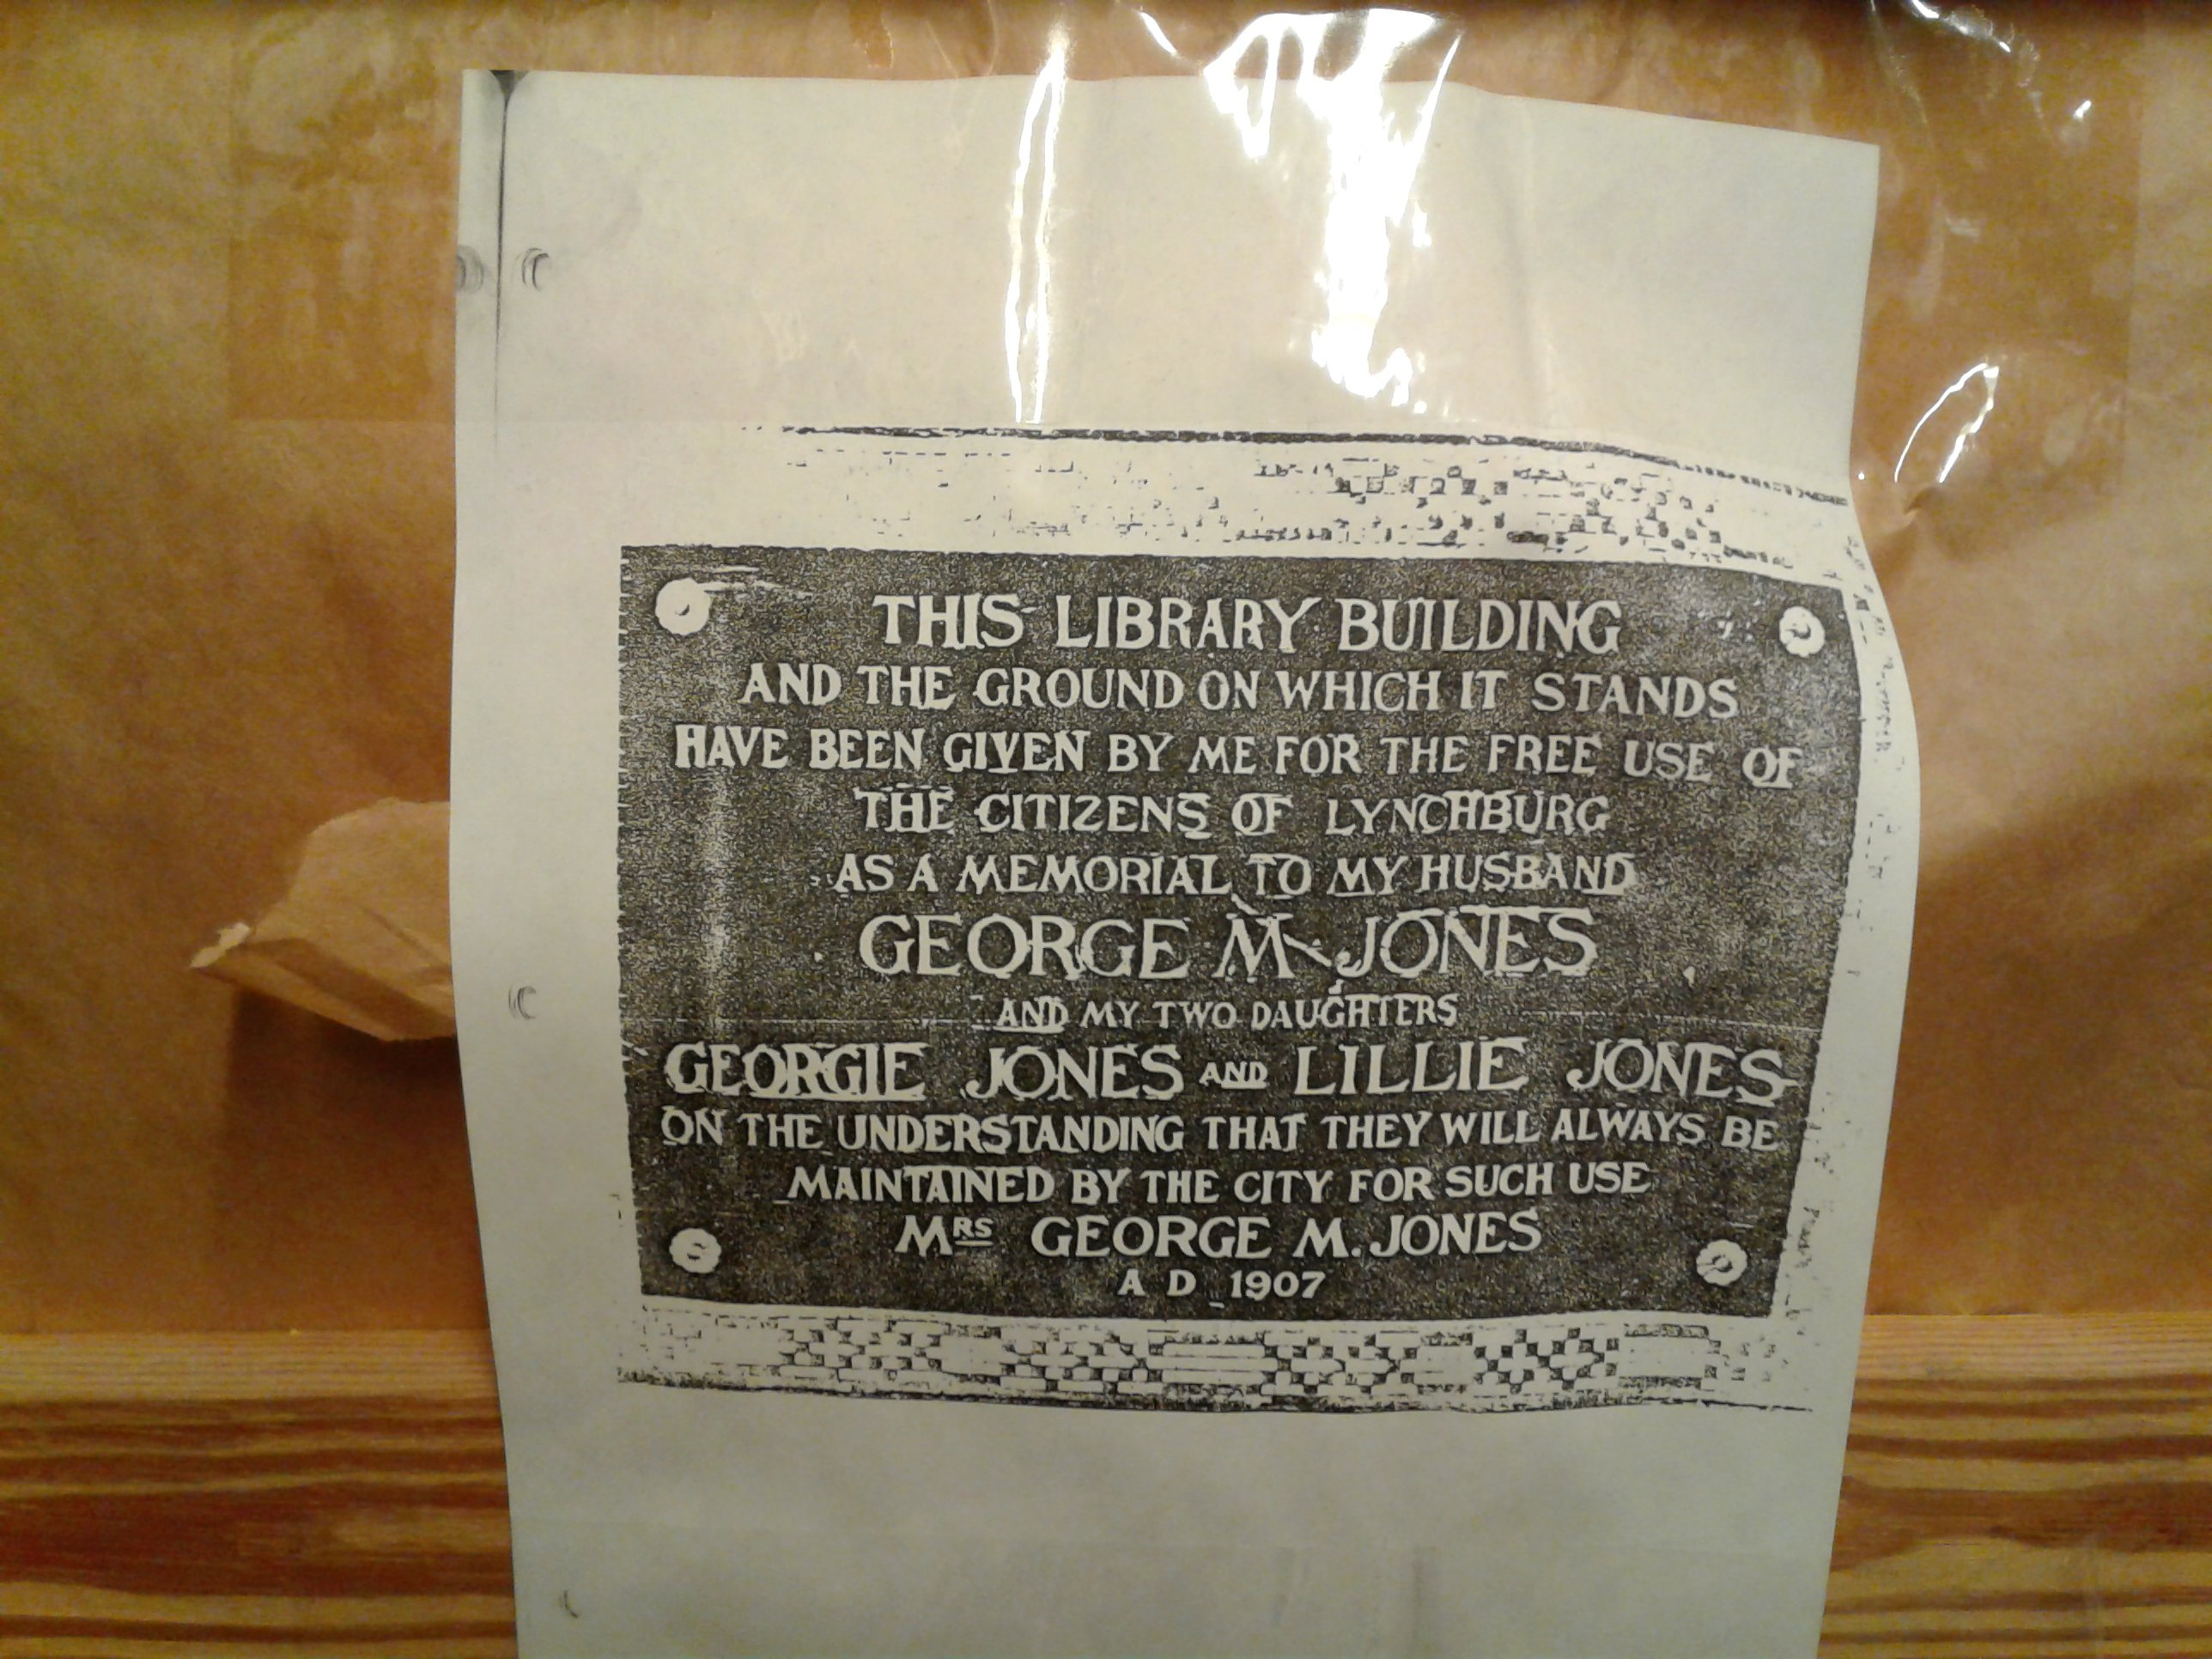 Xerox copy  of plaque where Frances Jones dedicates the Jones Memorial Library to her dead husband George Jones. Original plaque is sealed, has not undergone preservation, only this xerox copy was available.   ~Courtesy Jones Memorial Library